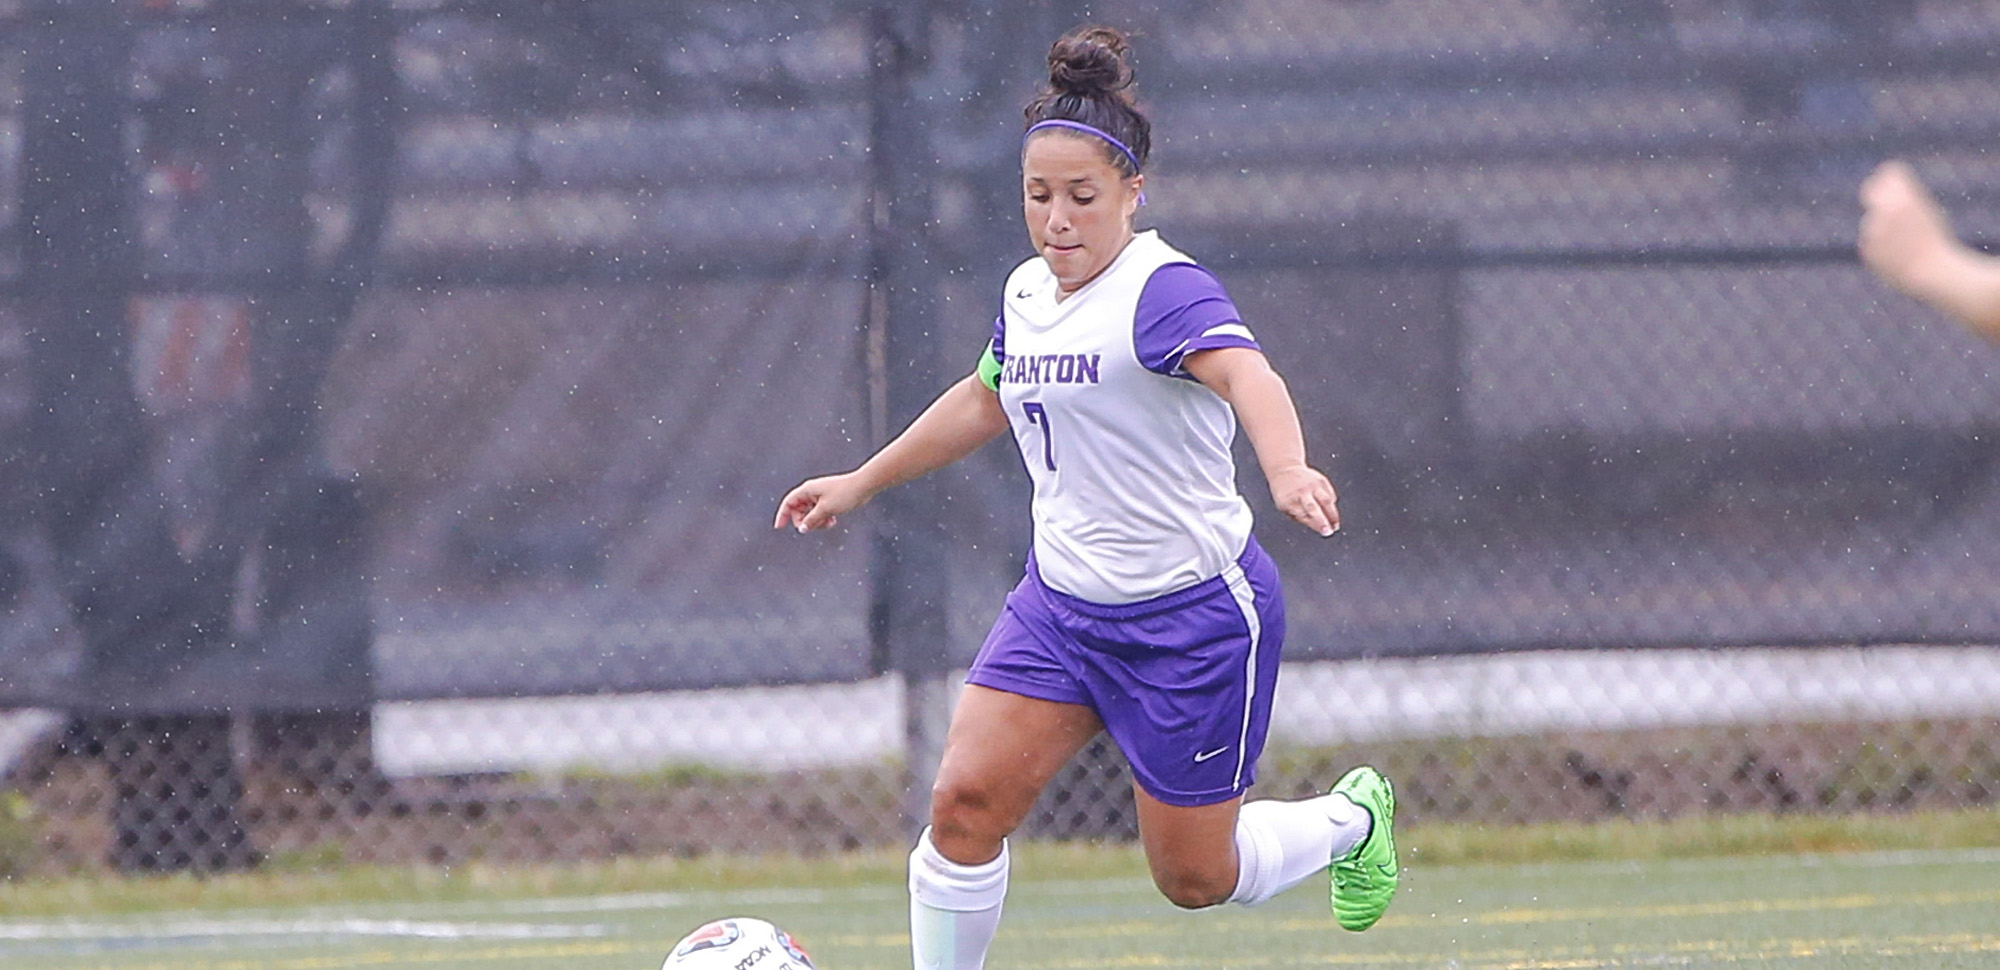 Sconciafurno Named Scholar All-Region By NSCAA